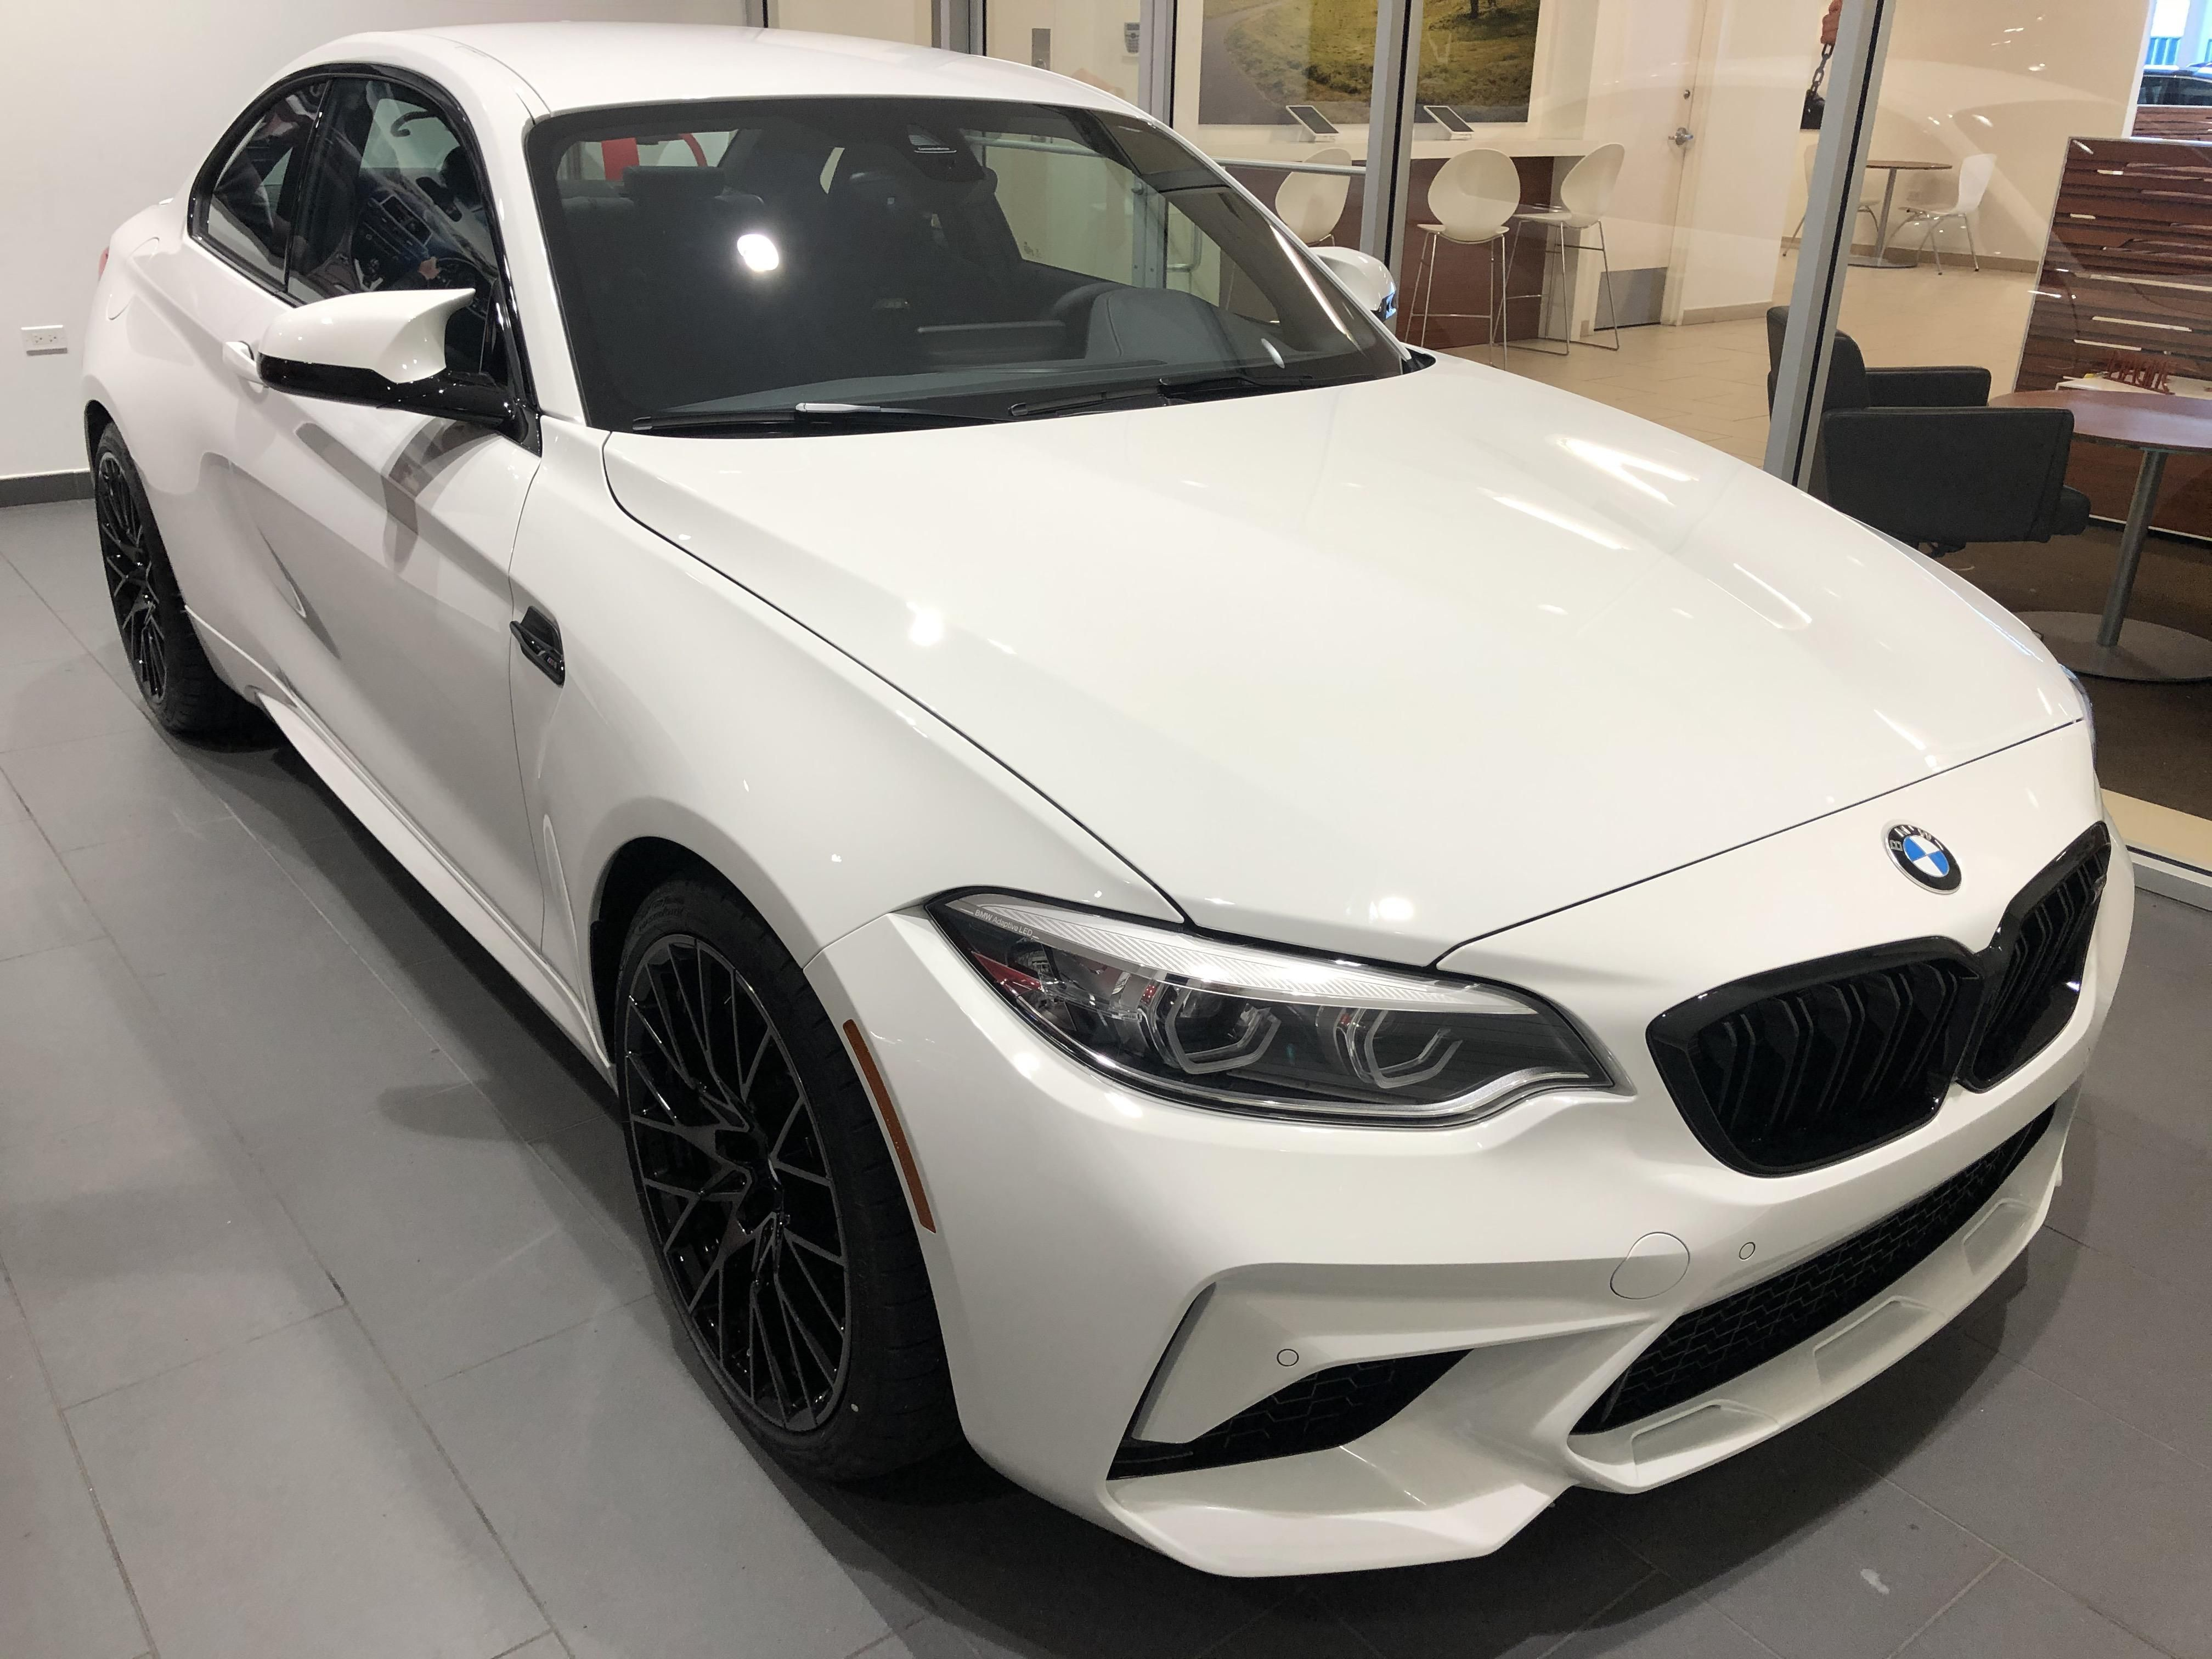 Took Home This 2020 M2 Competition Bmw New Cars Bmw Price